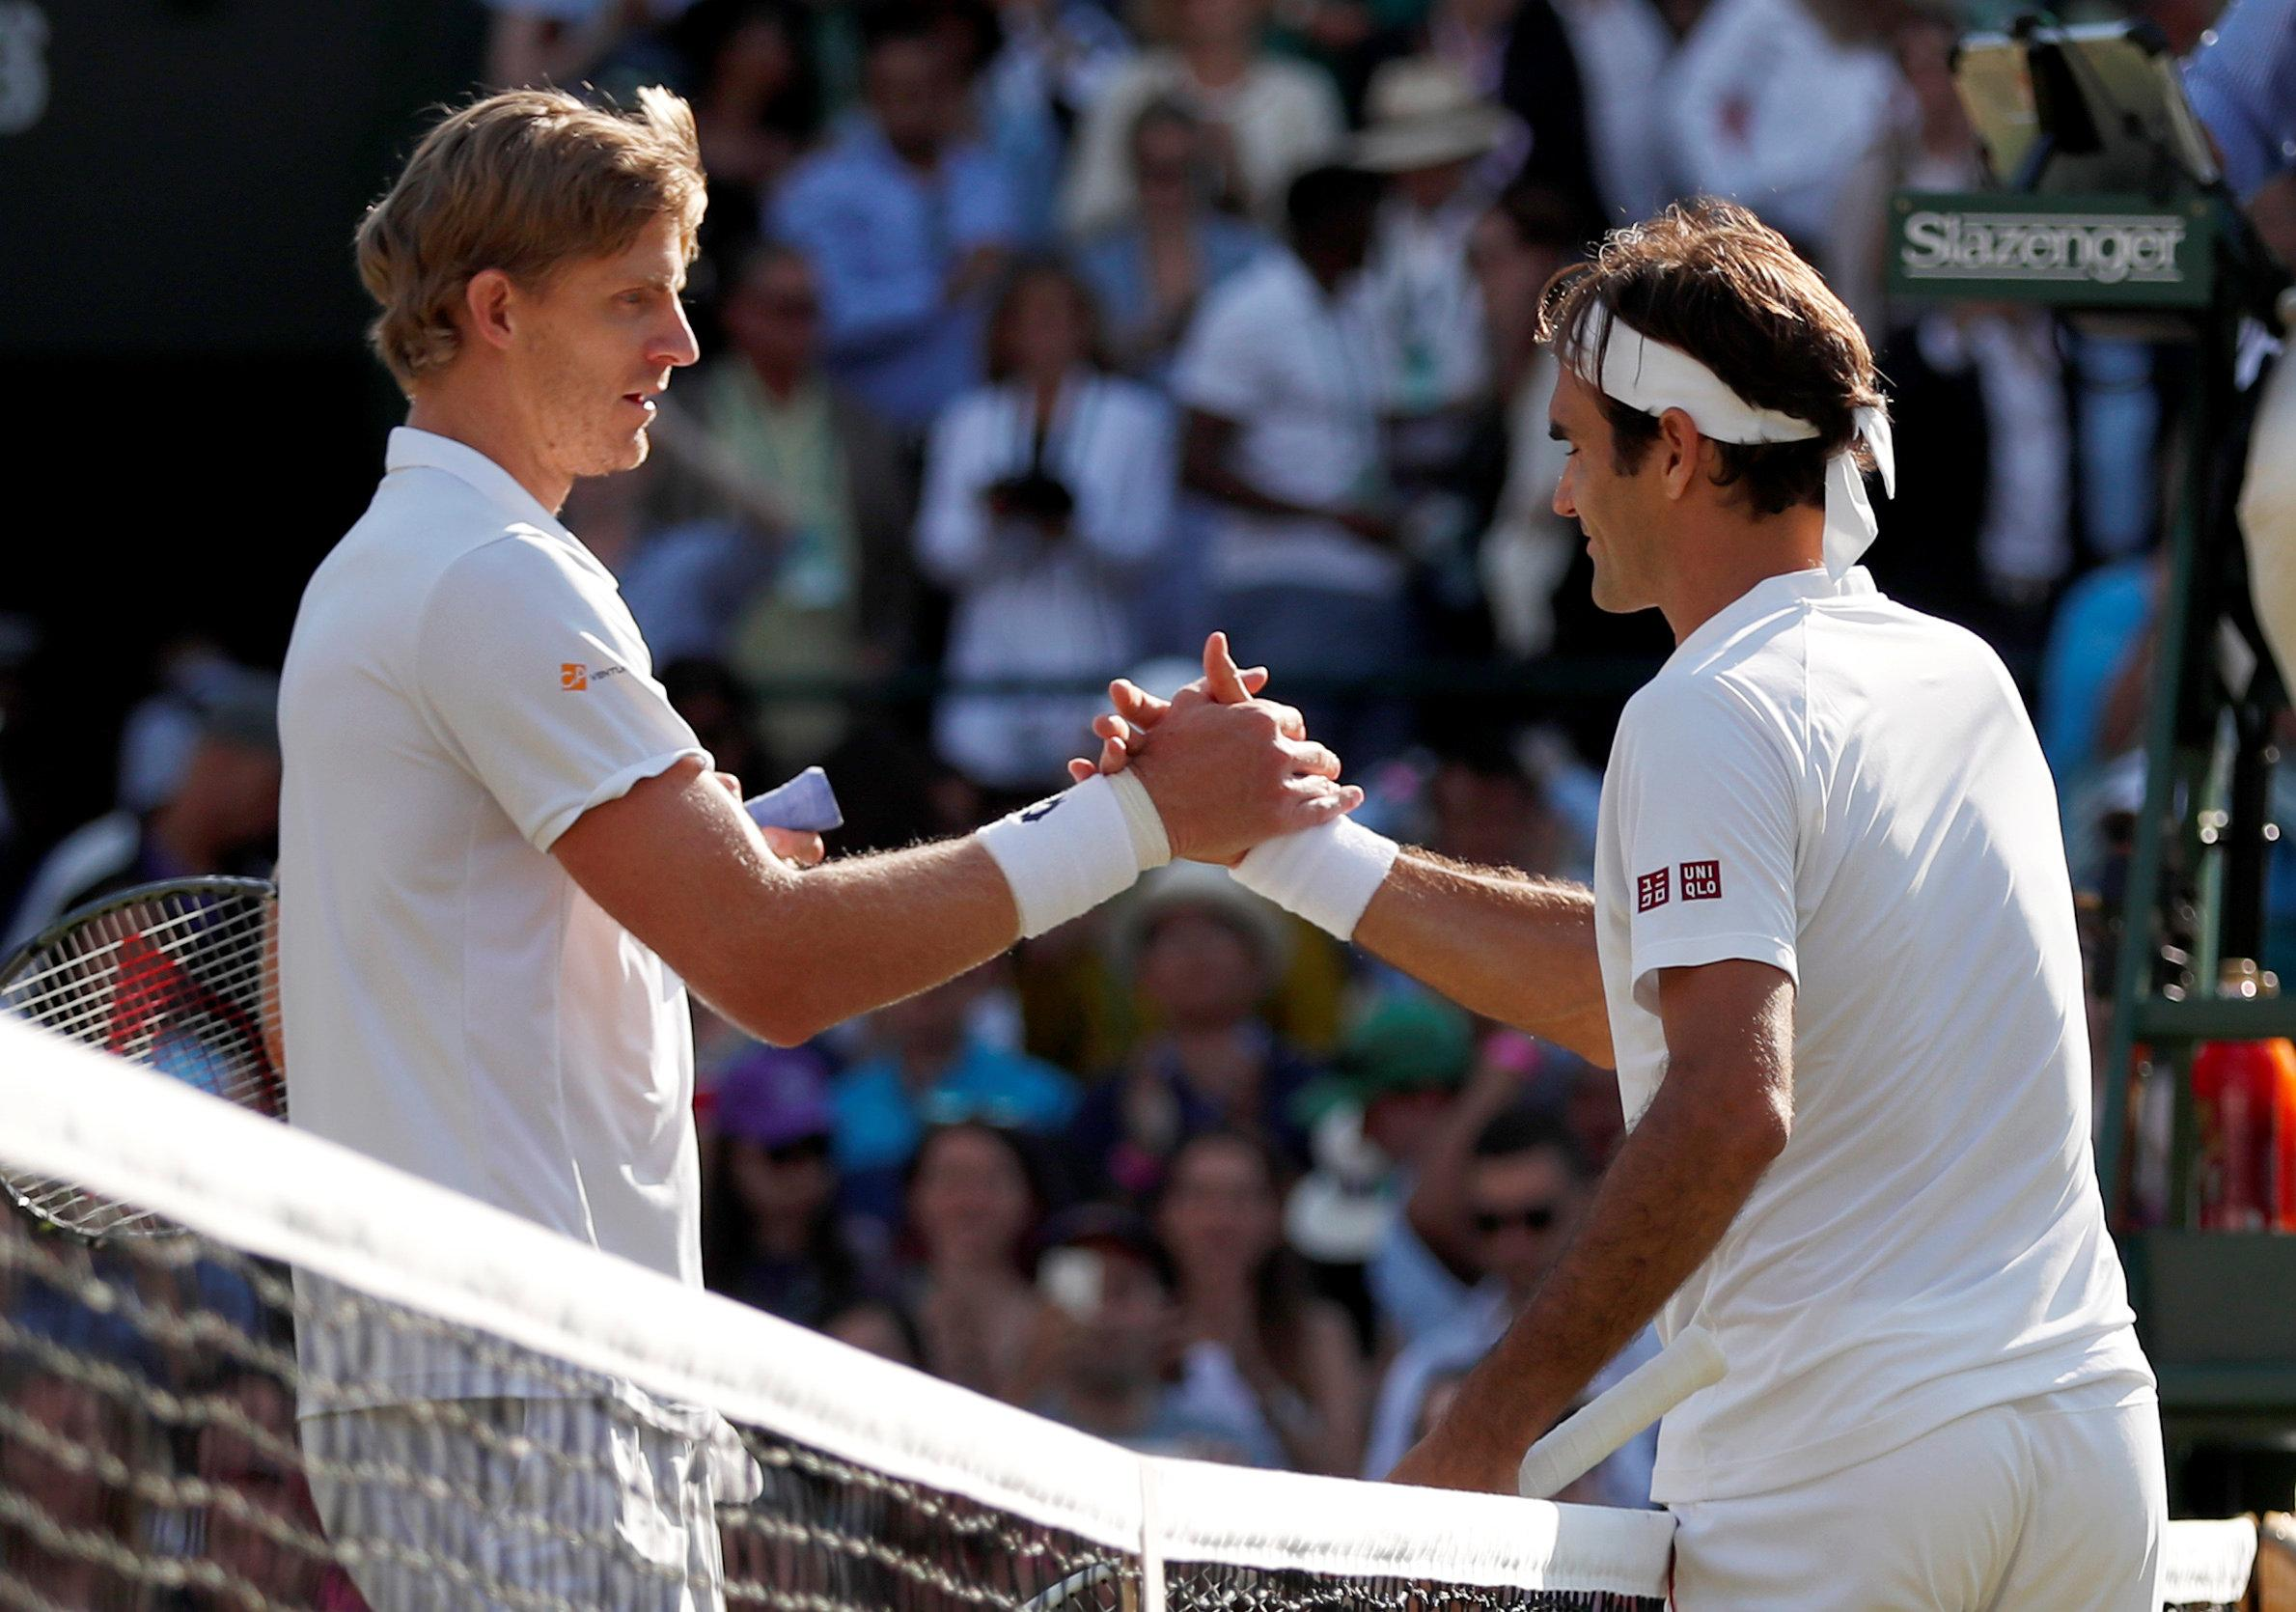 Federer may face his Wimbledon conqueror Kevin Anderson in the semi-finals next week